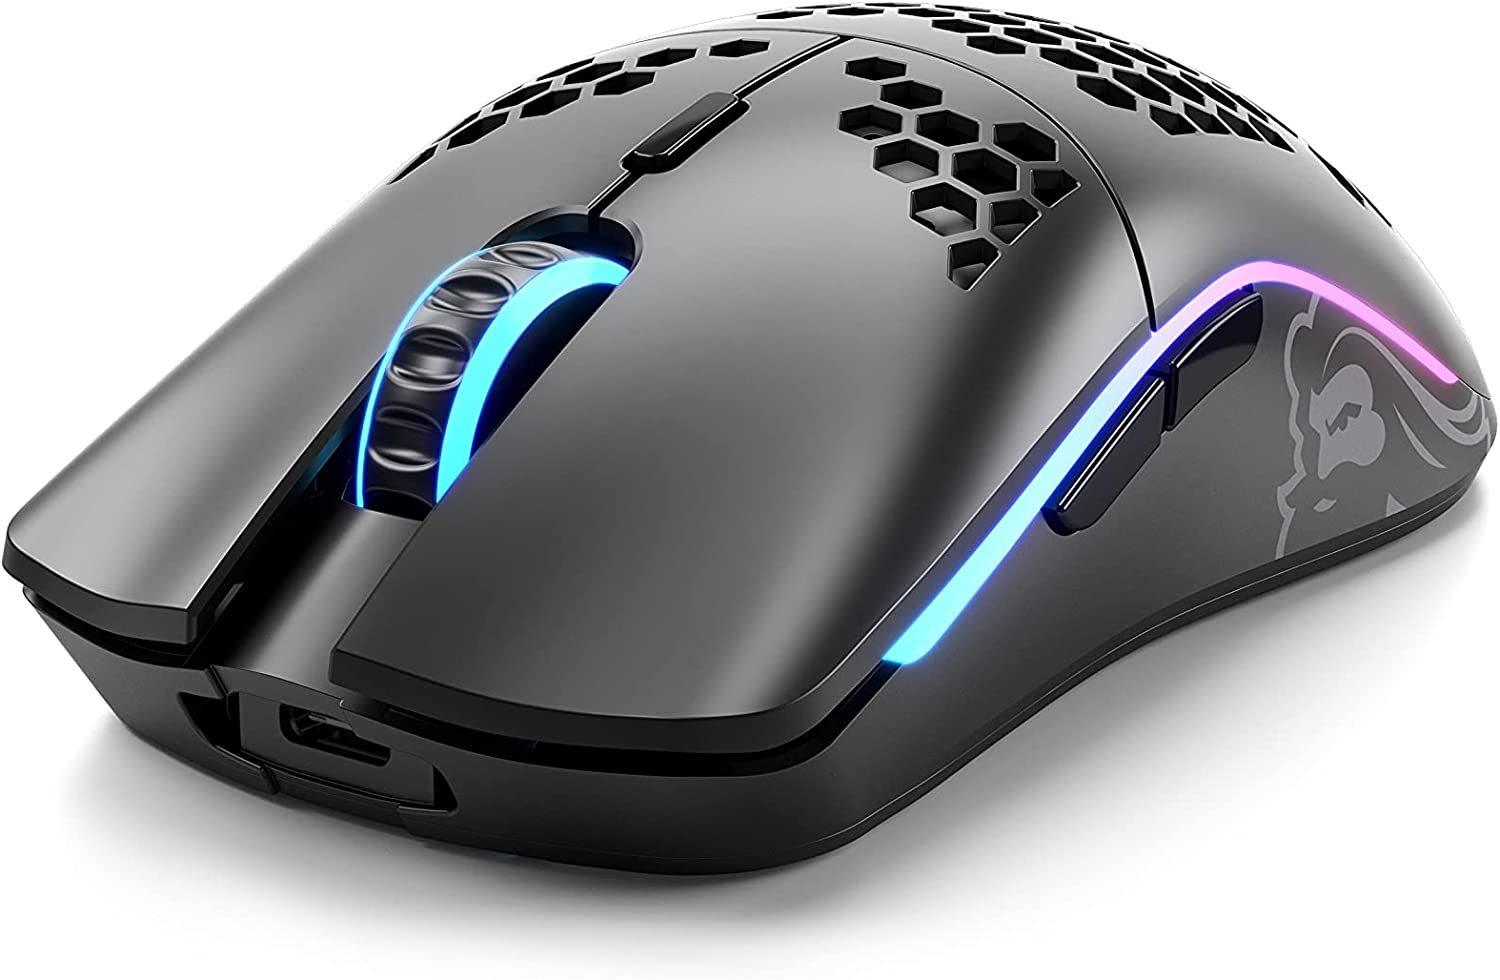 Best Drag Clicking Mouse